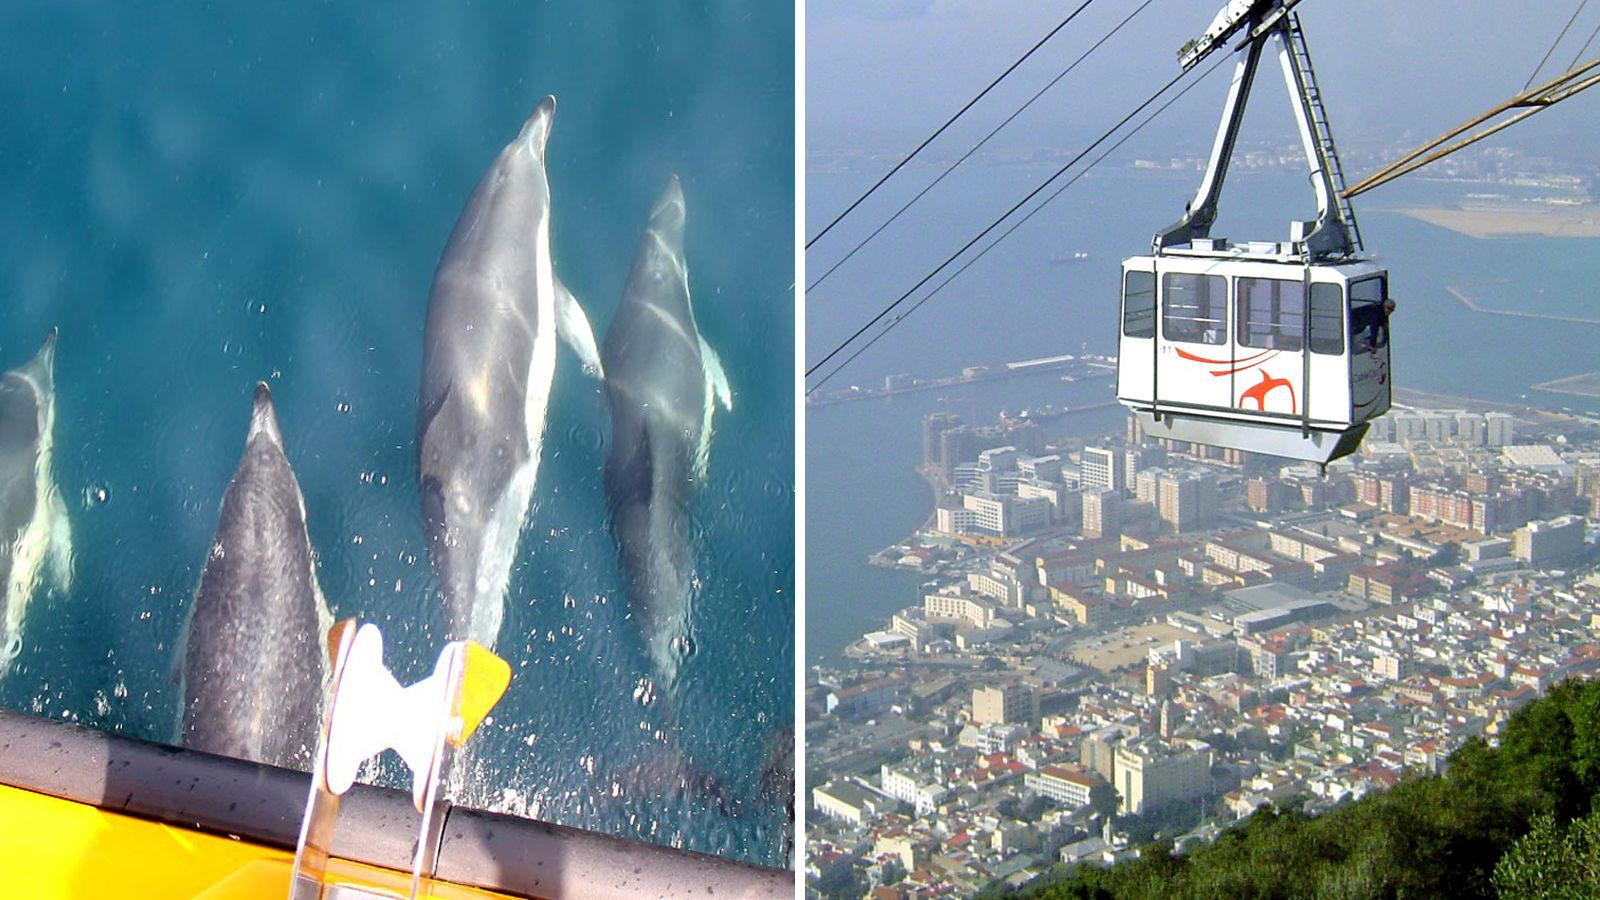 Split image showing dolphins swimming under the bow of a boat and an aerial cable car high above the city in Gibraltar